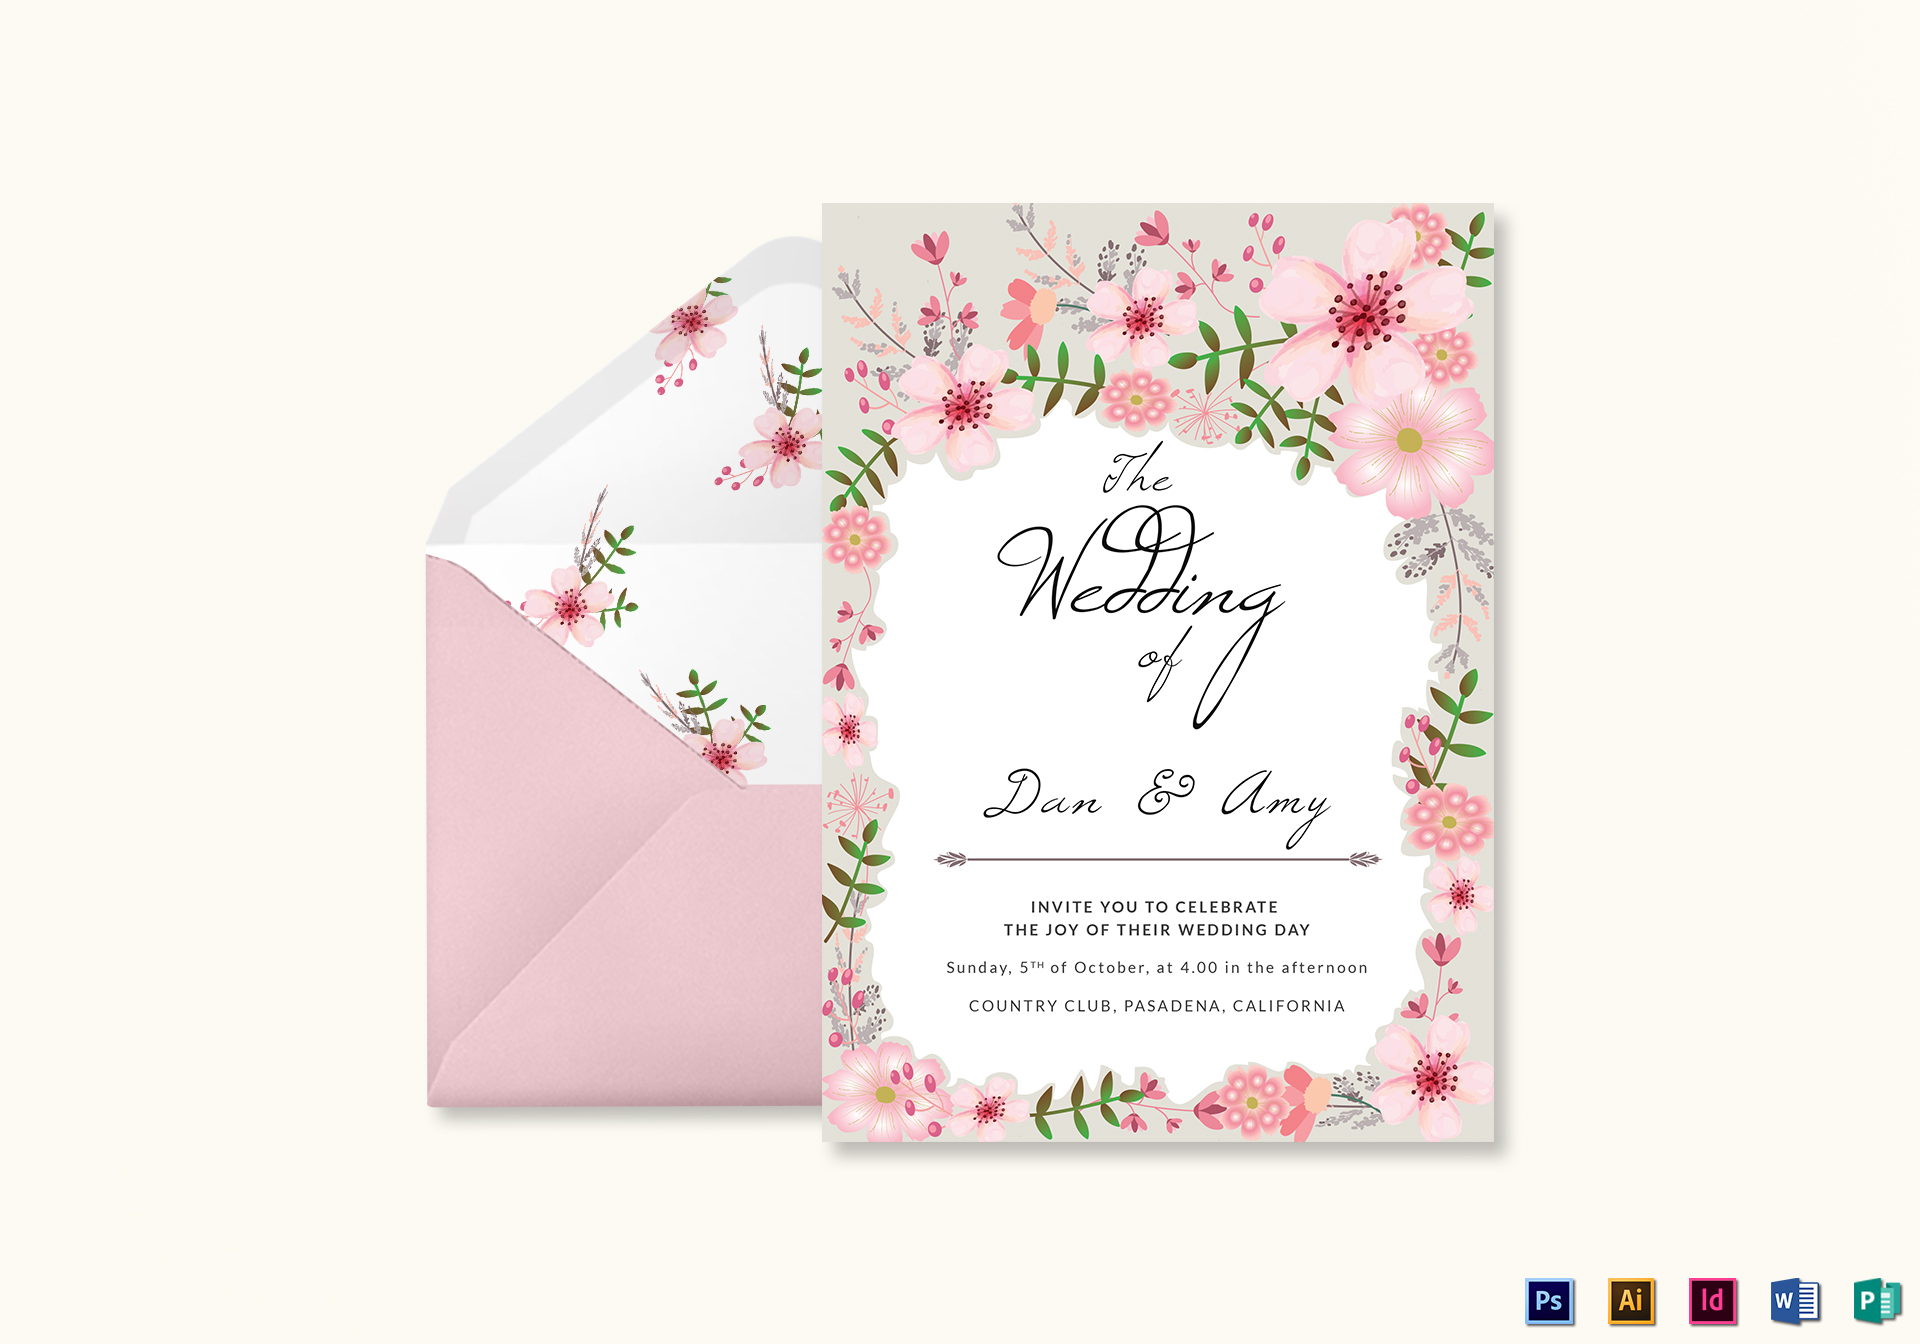 Pink Floral Wedding Invitation Card Design Template in PSD, Word ...